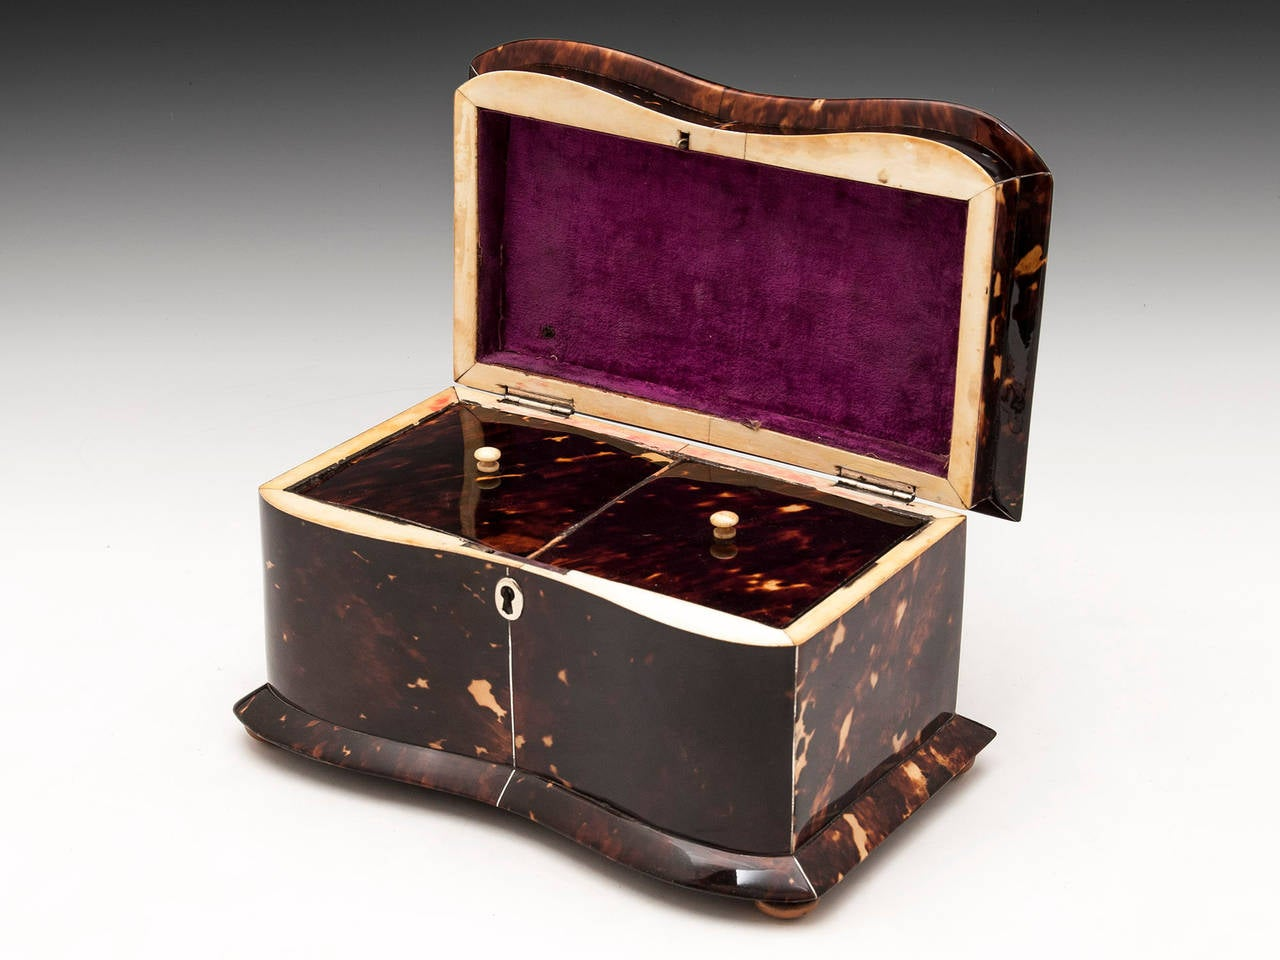 Regency Tortoiseshell Tea Caddy For Sale 2